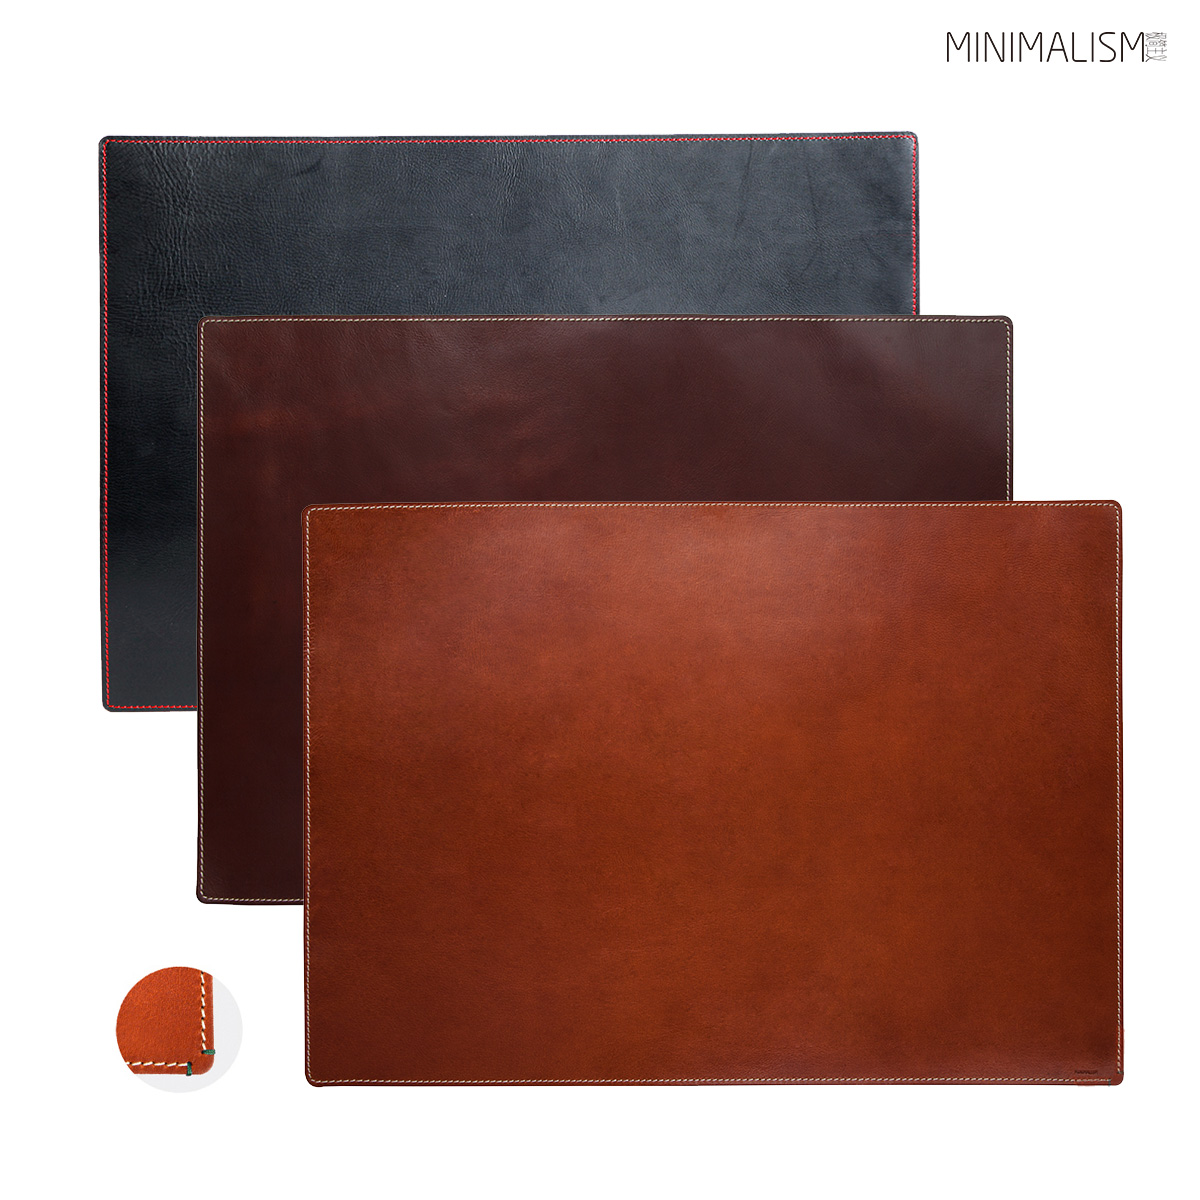 MINIMALISM minimalist leather cowhide protector mouse table mat rectangular ML9C011